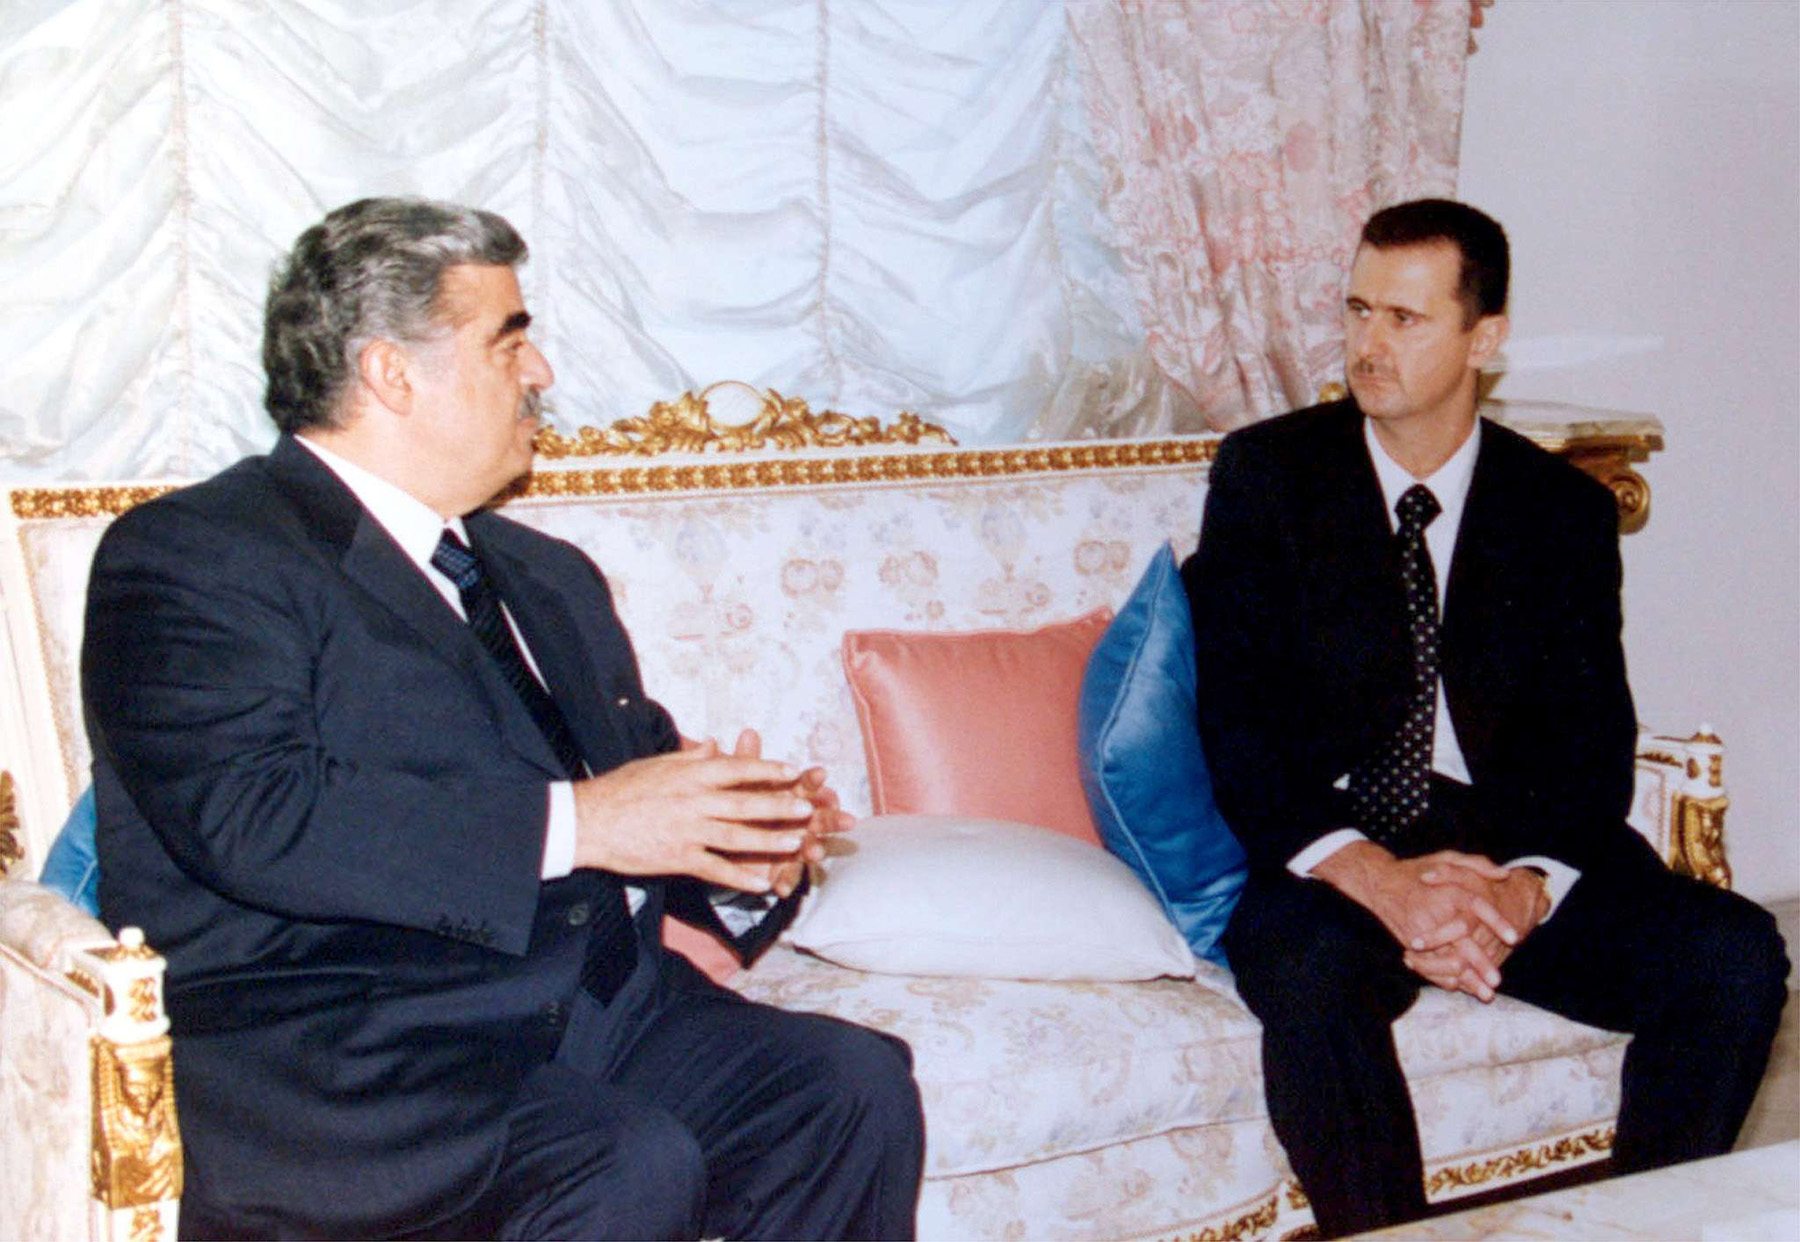 A file picture shows Syrian President Bashar al-Assad meeting with Rafik al-Hariri in Damascus, in  June 2000. (REUTERS)